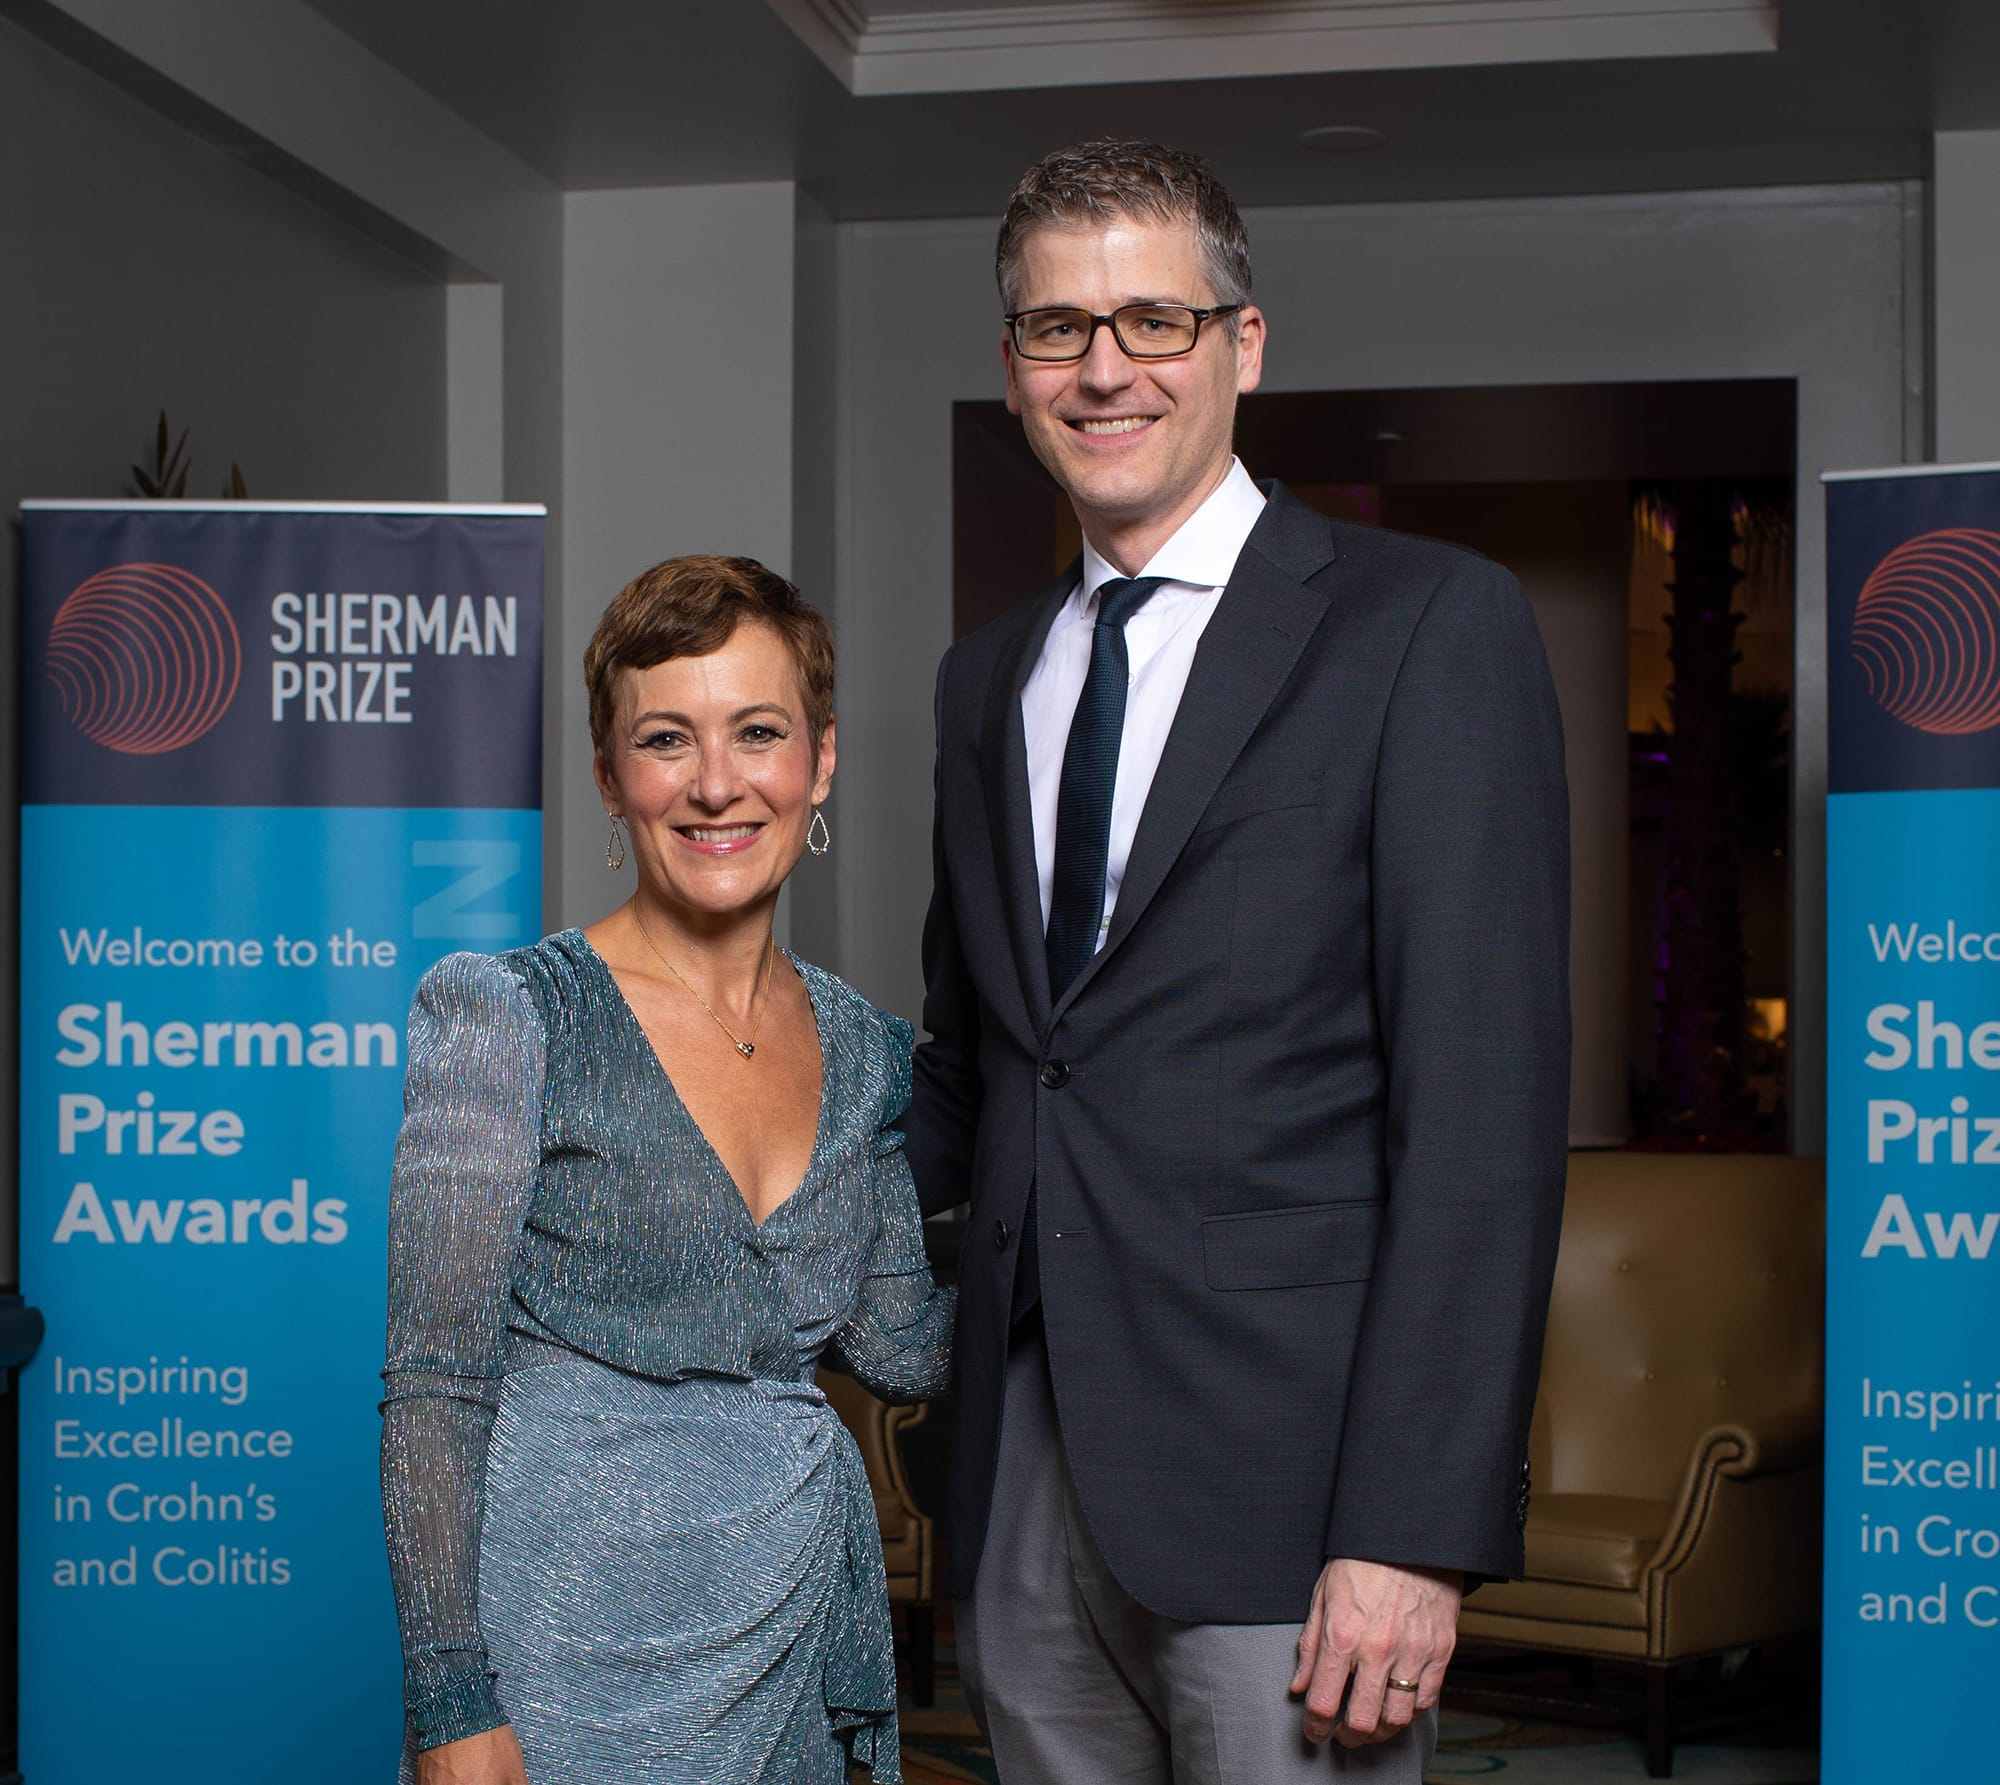 <p>2019 Sherman Prize Recipient Dr. Maria Abreu and 2019 Sherman Emerging Leader Prize Recipient Dr. Florian Rieder</p>